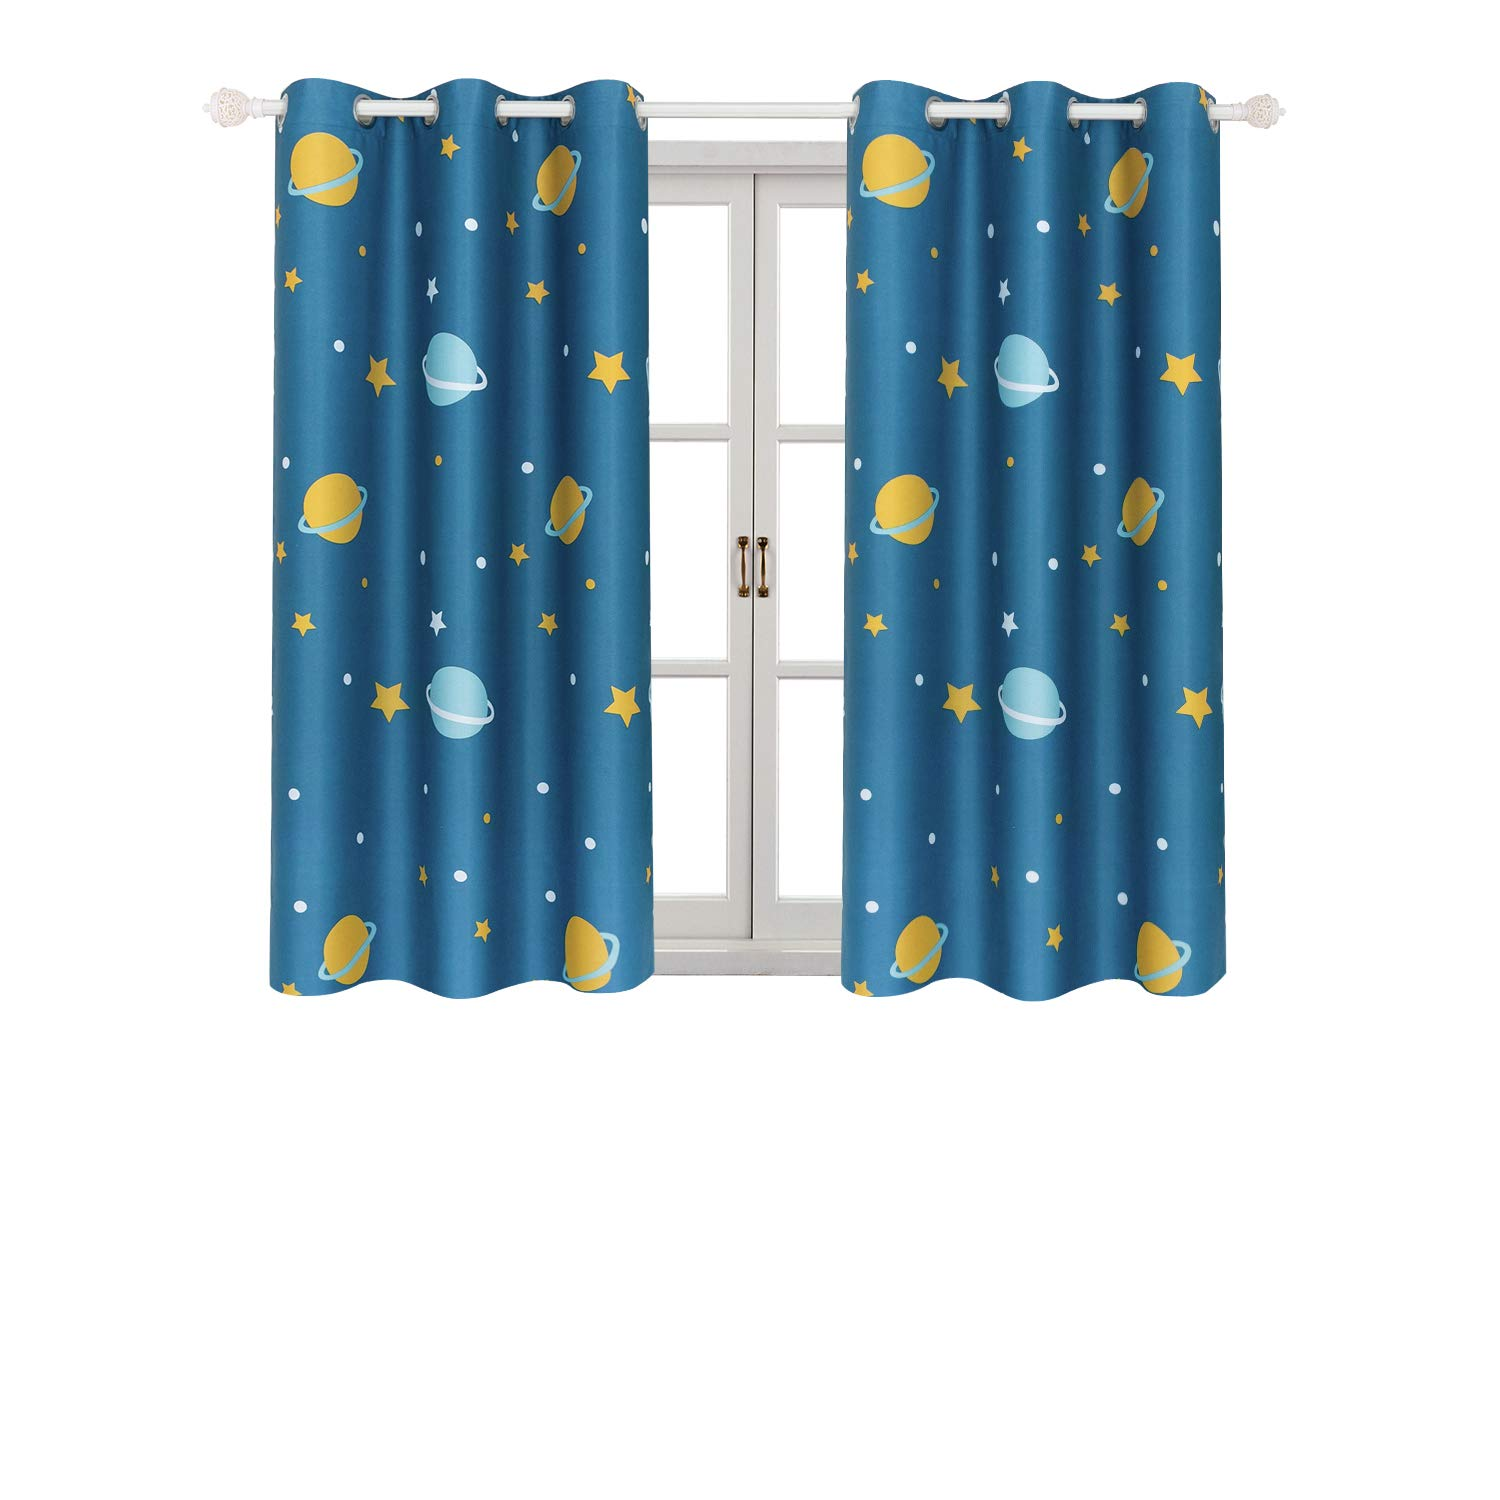 Room Darkening Kids Curtains for Bedroom –Cute Planet Printed Curtains with Twinkle Star Patterns, Grommet, 2 Panels (42'' Wx63 L Each Panel, Blue)